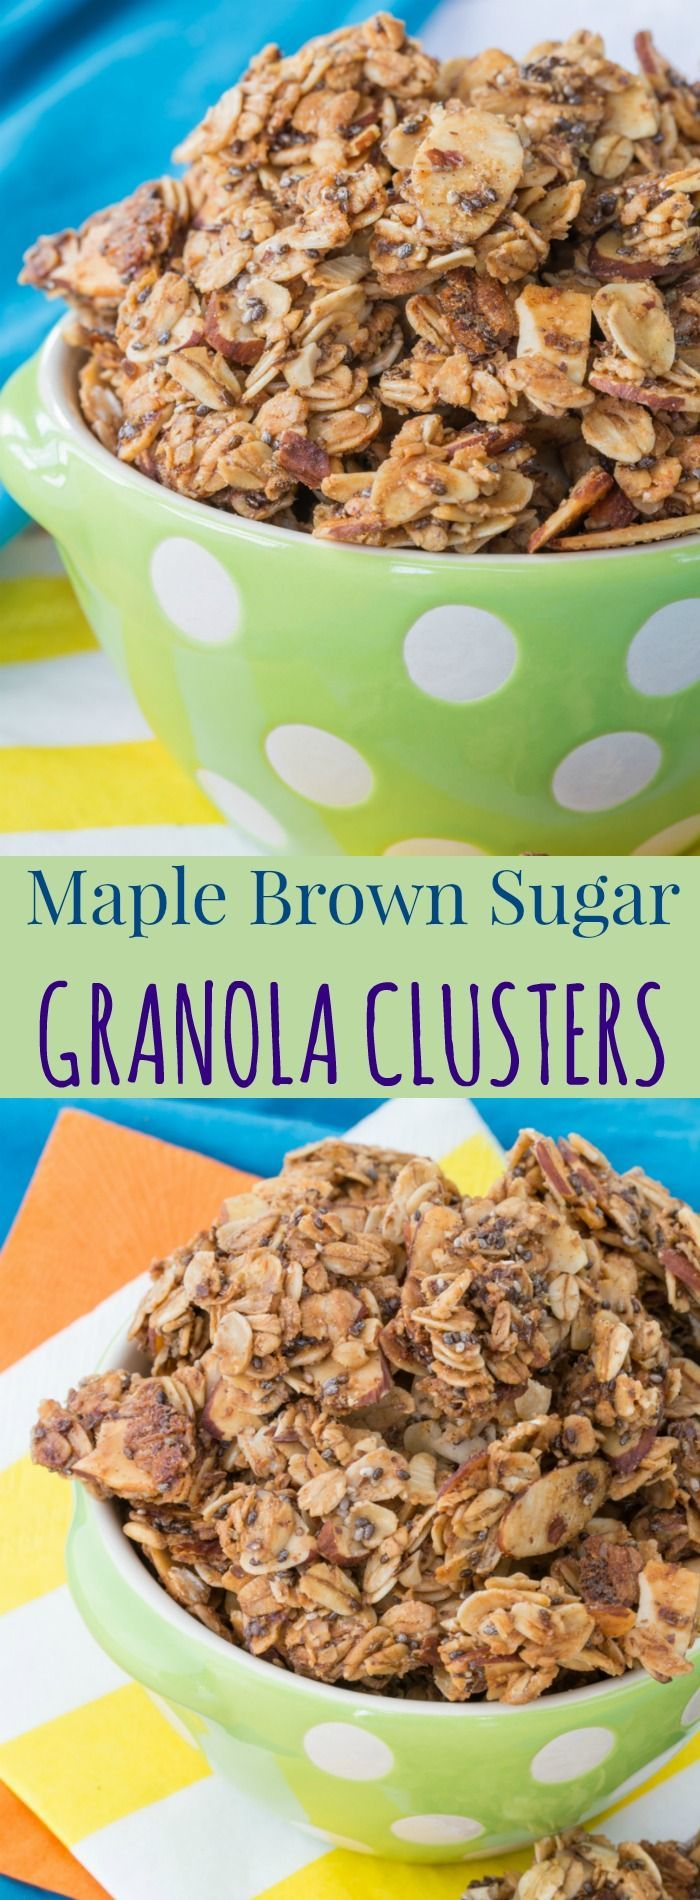 Maple Brown Sugar Granola Clusters - this easy granola recipe is great for breakfast or a healthy snack as a crunchy topping for your yogurt! Gluten free, dairy free, and vegan. #SundaySupper | cupcakesandkalechips.com